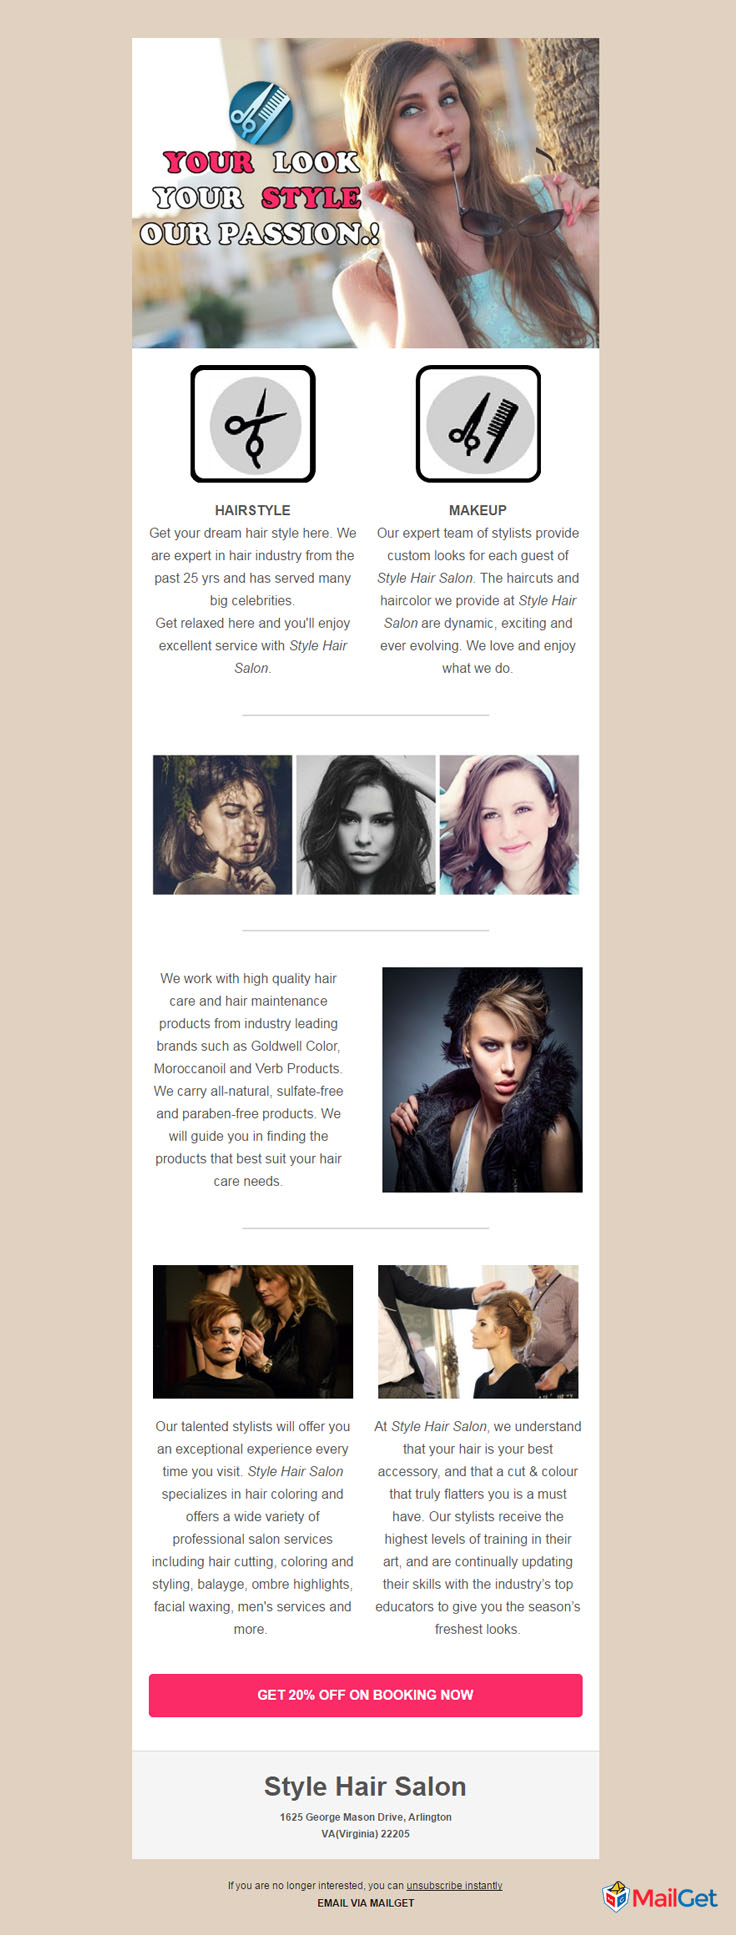 free-hair-salon-email-newsletter-templates-2-MailGet